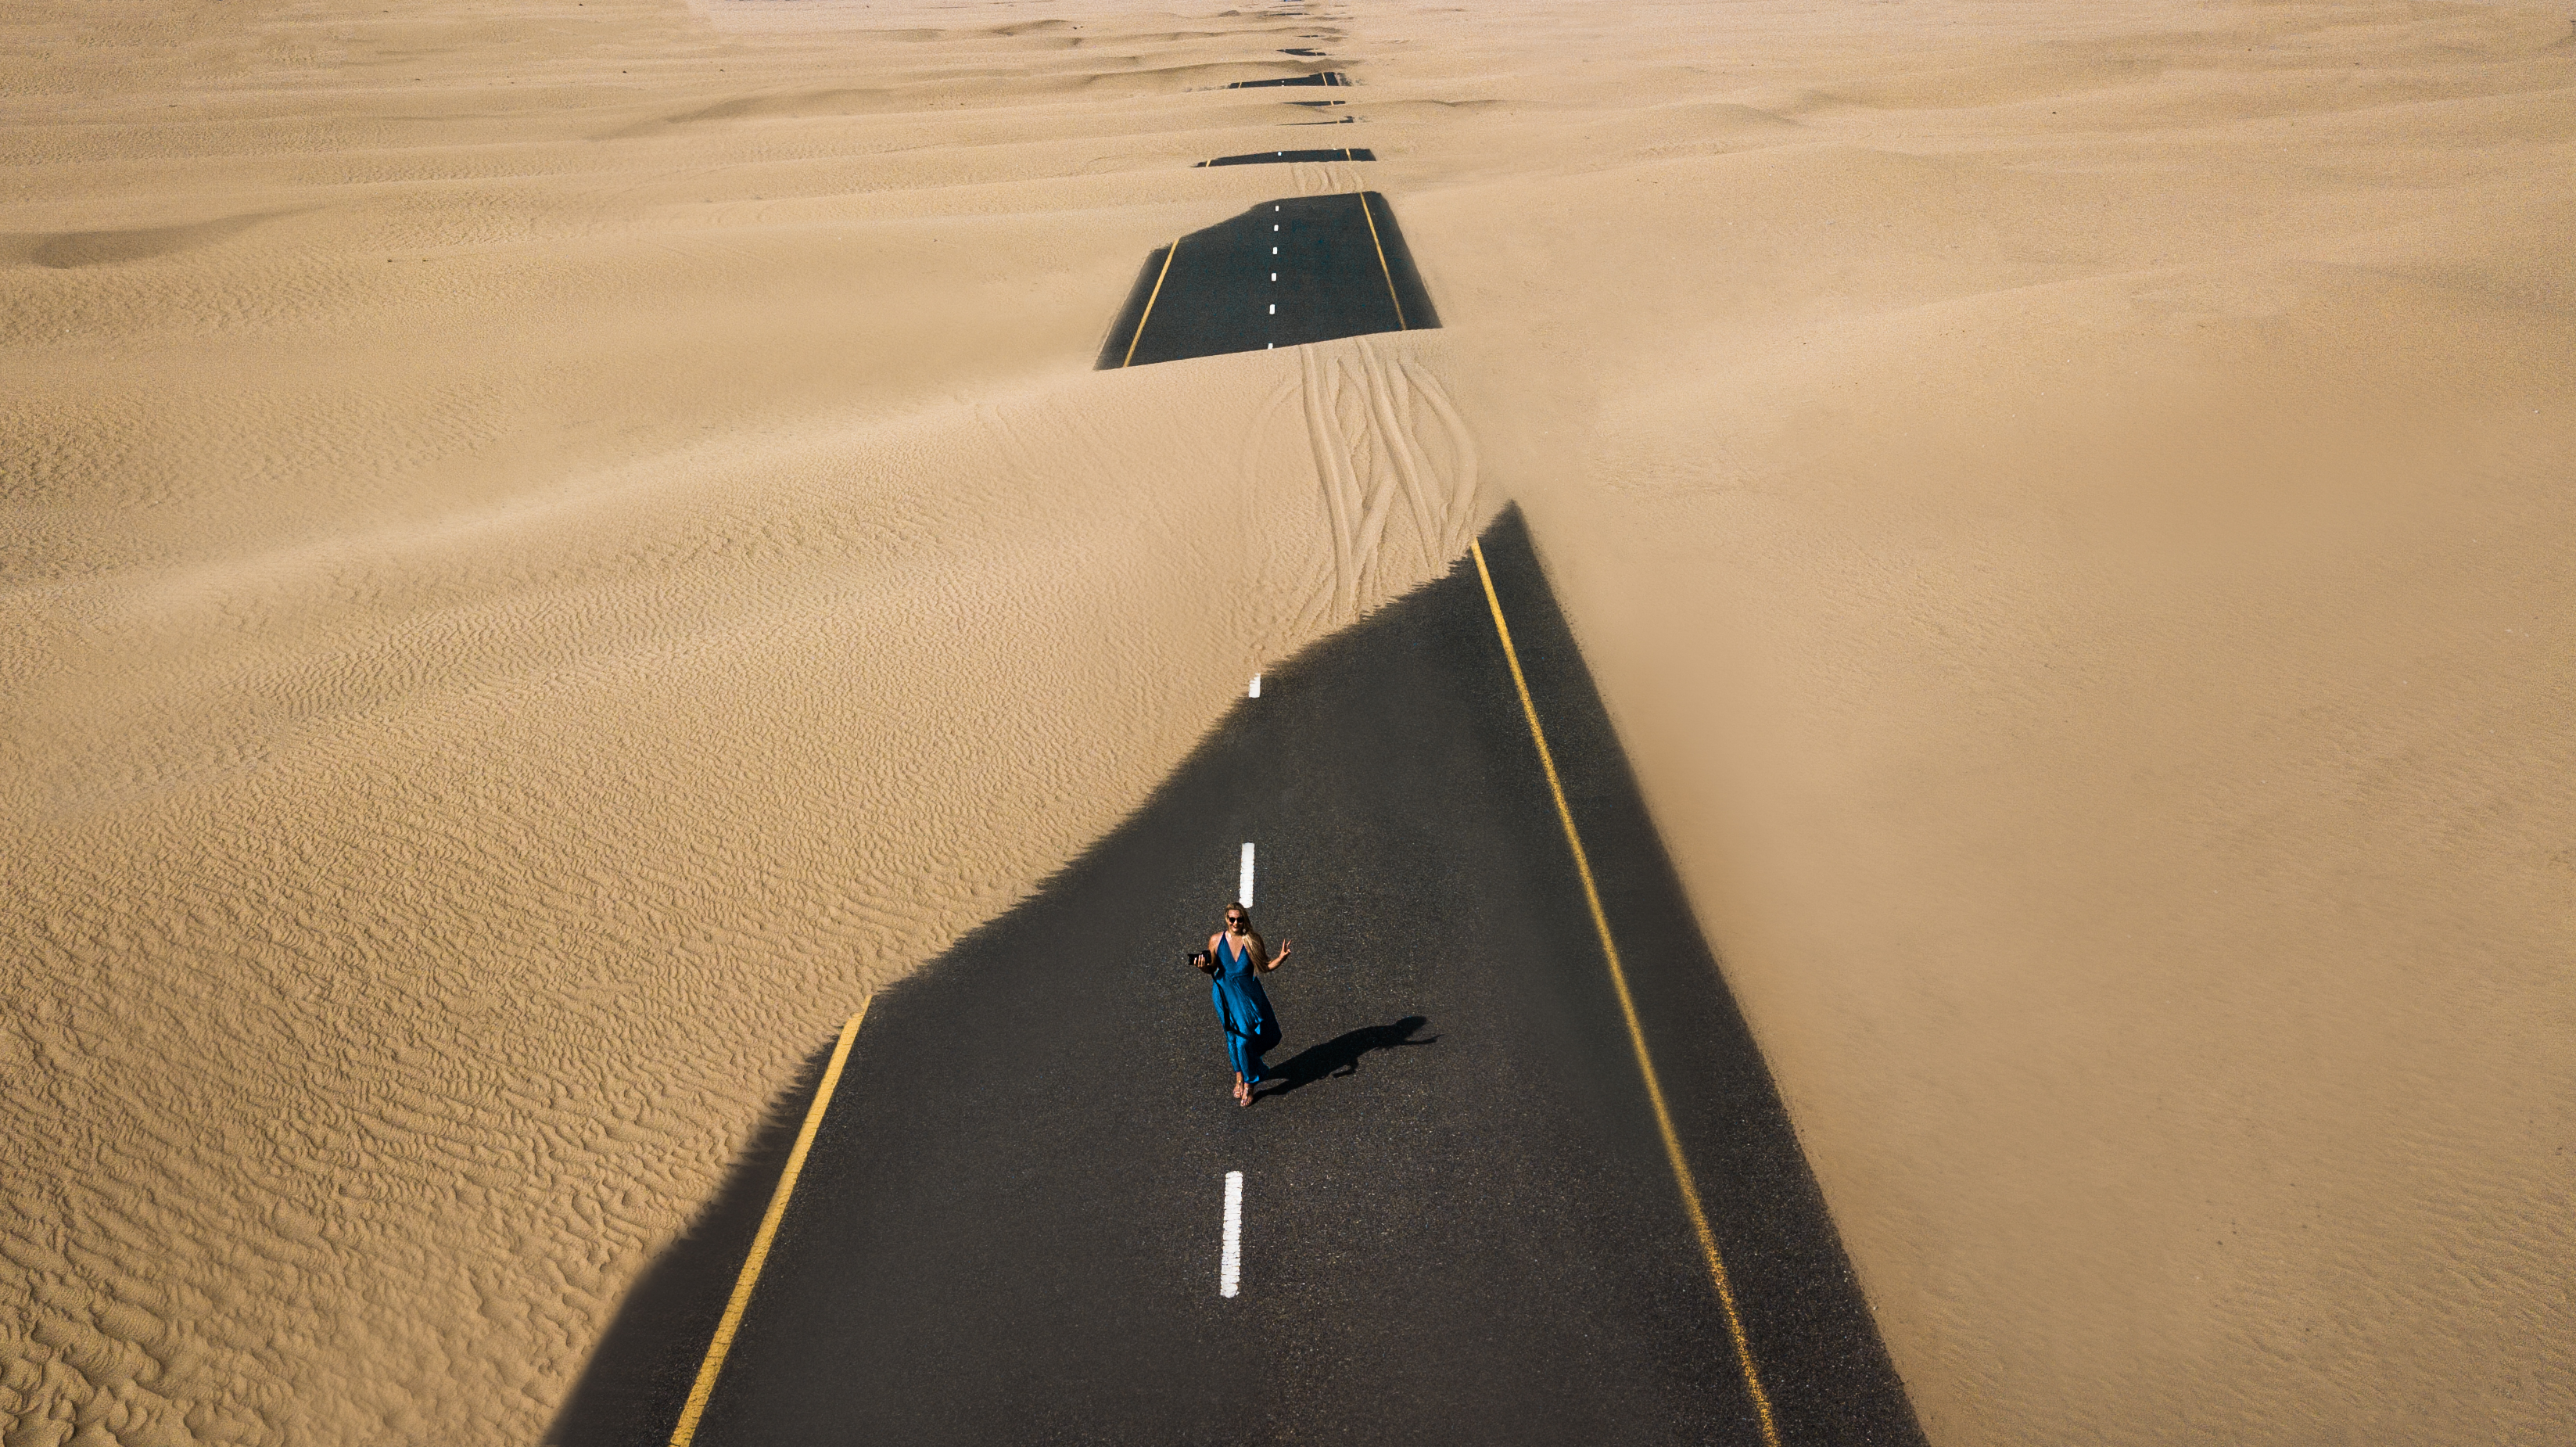 Birds Eye View Photography of Road in the Middle of Desert